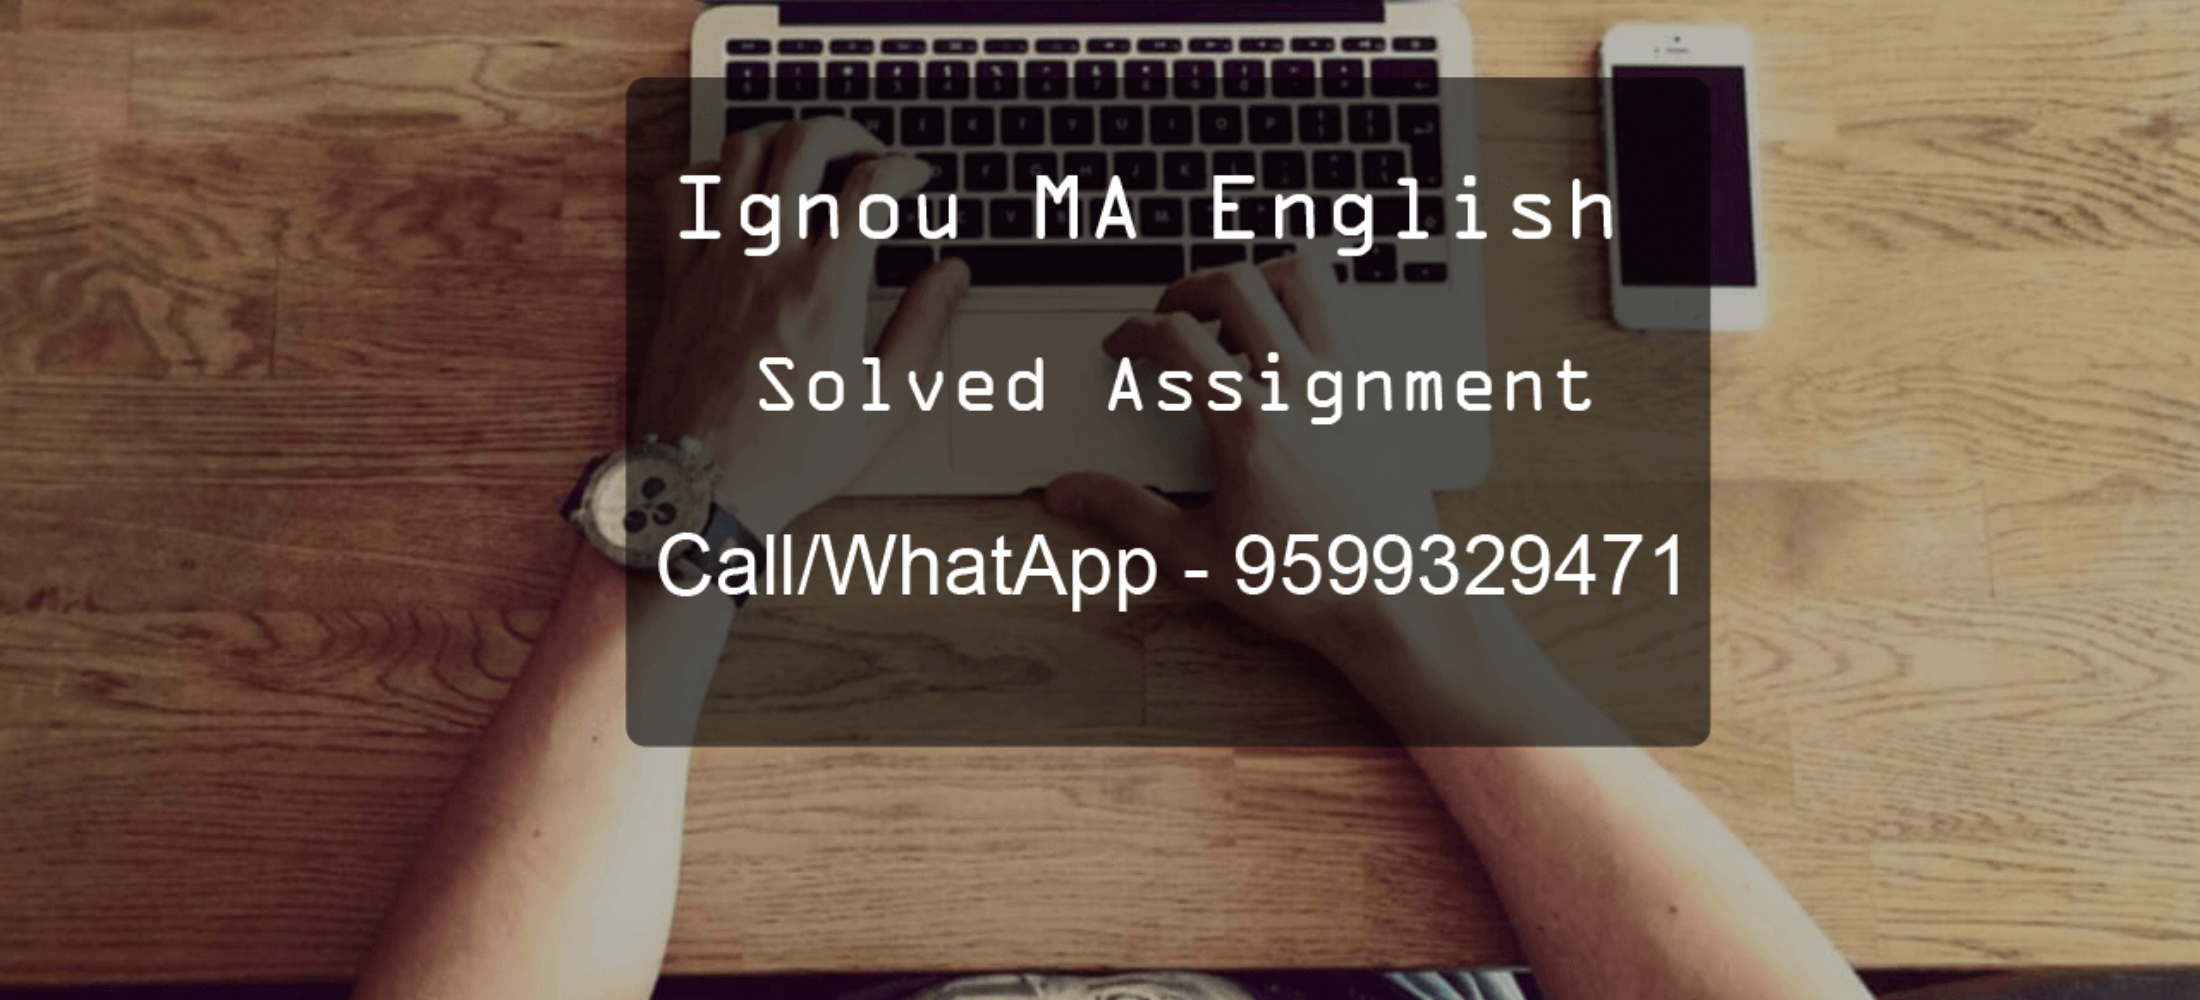 IGNOU MA English Solved Assignments Free Download - MEG 2017/18-19